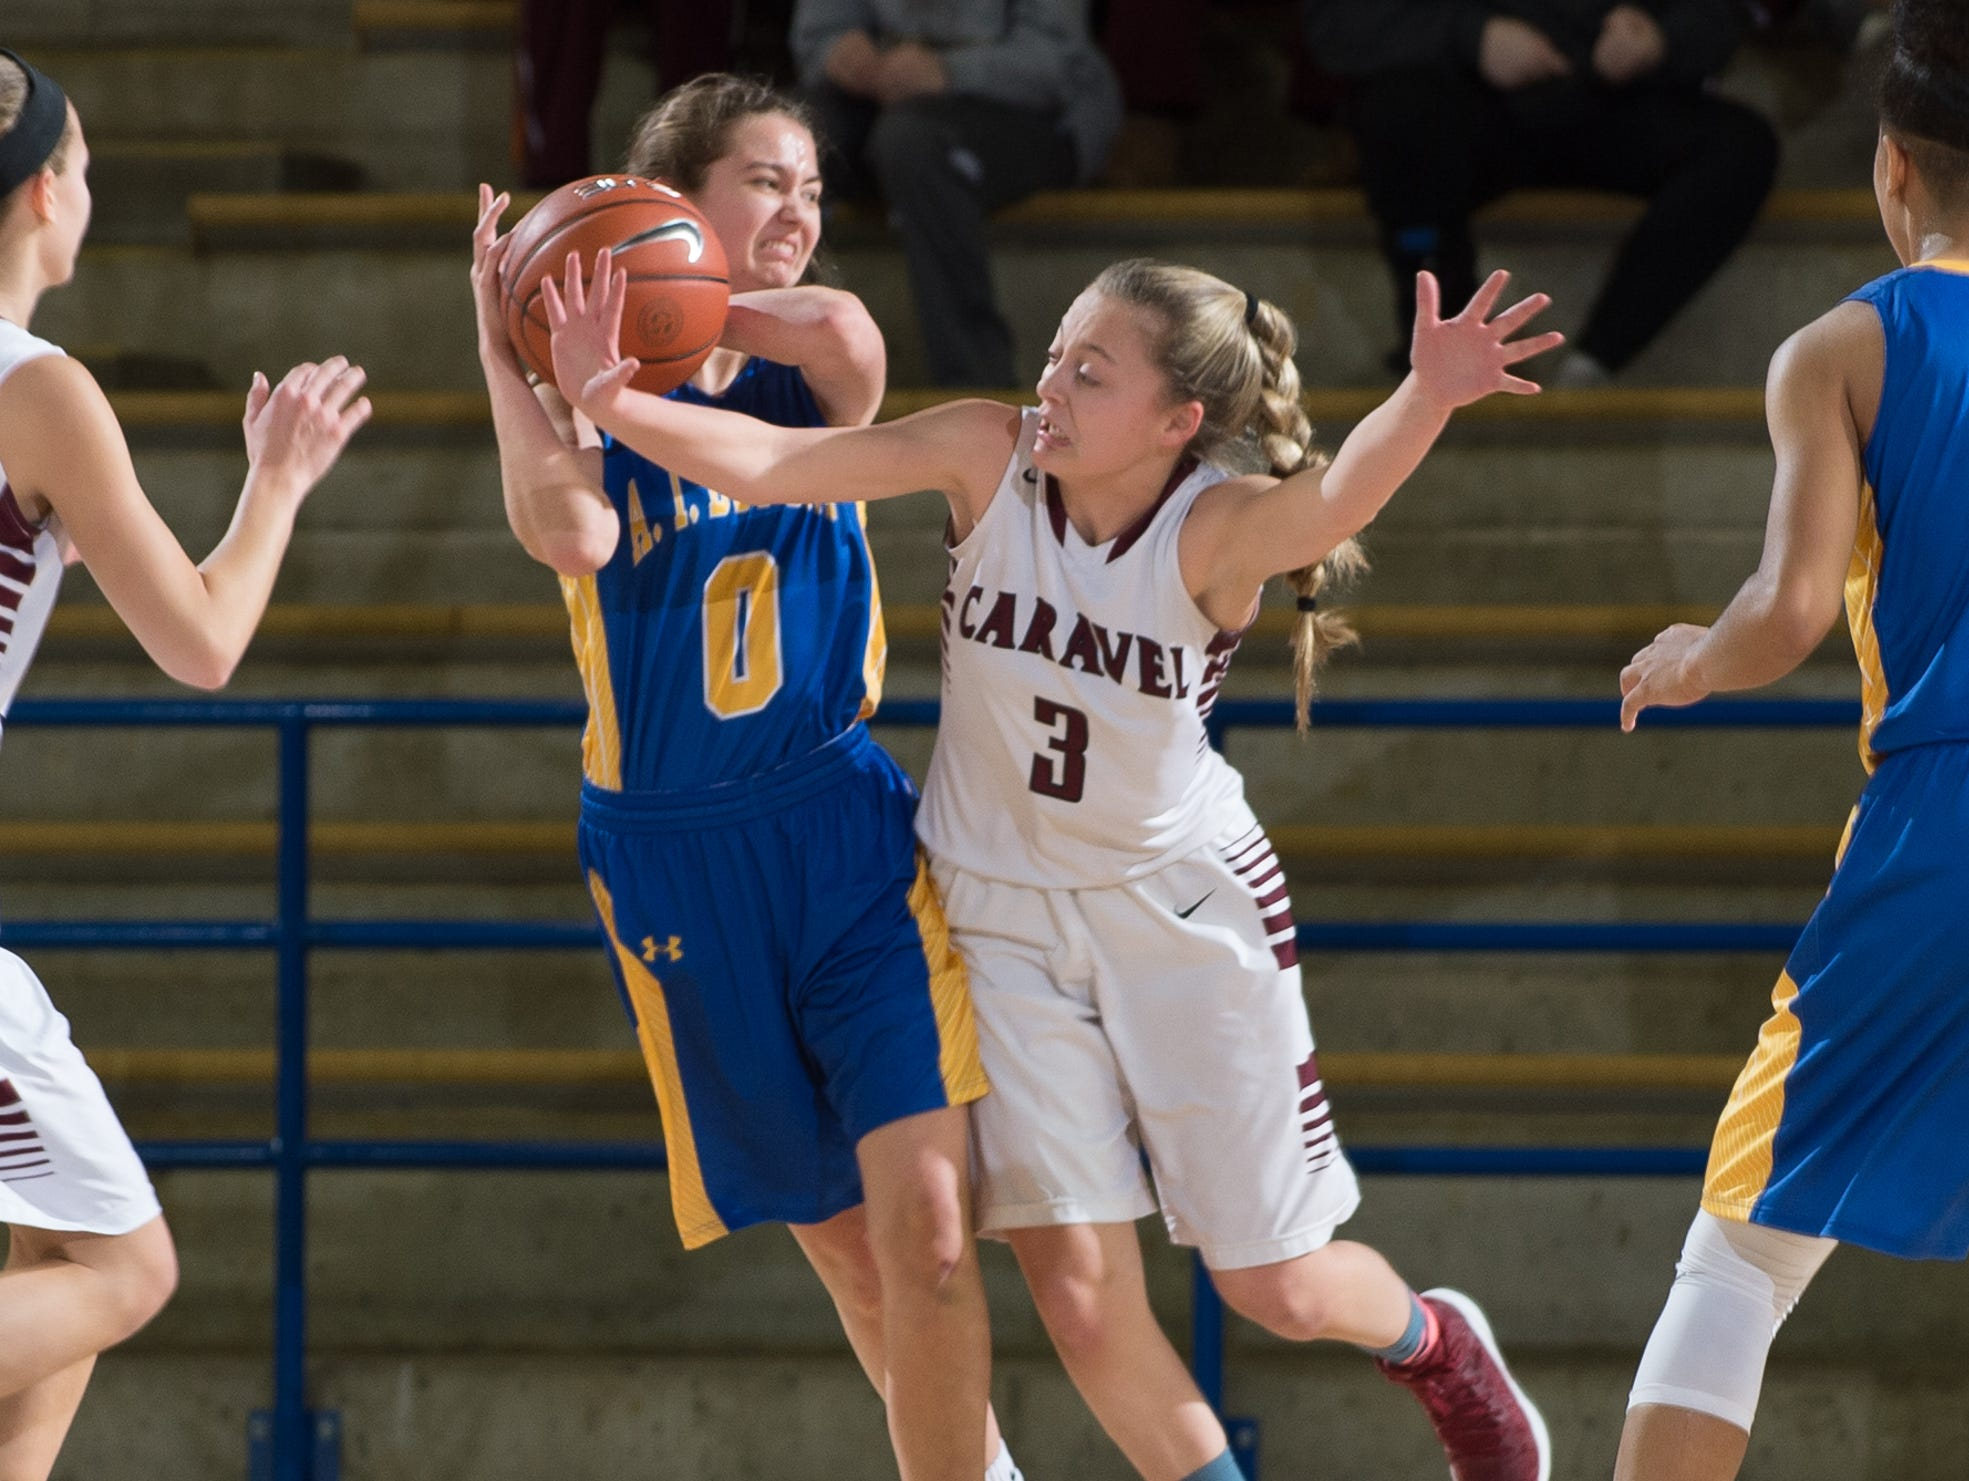 Caravel's Karli Cauley (3) knocks the ball from A.I. duPont's Adeline Runco (0) in the quarterfinals of DIAA Girls Basketball Tournament at the University of Delaware.